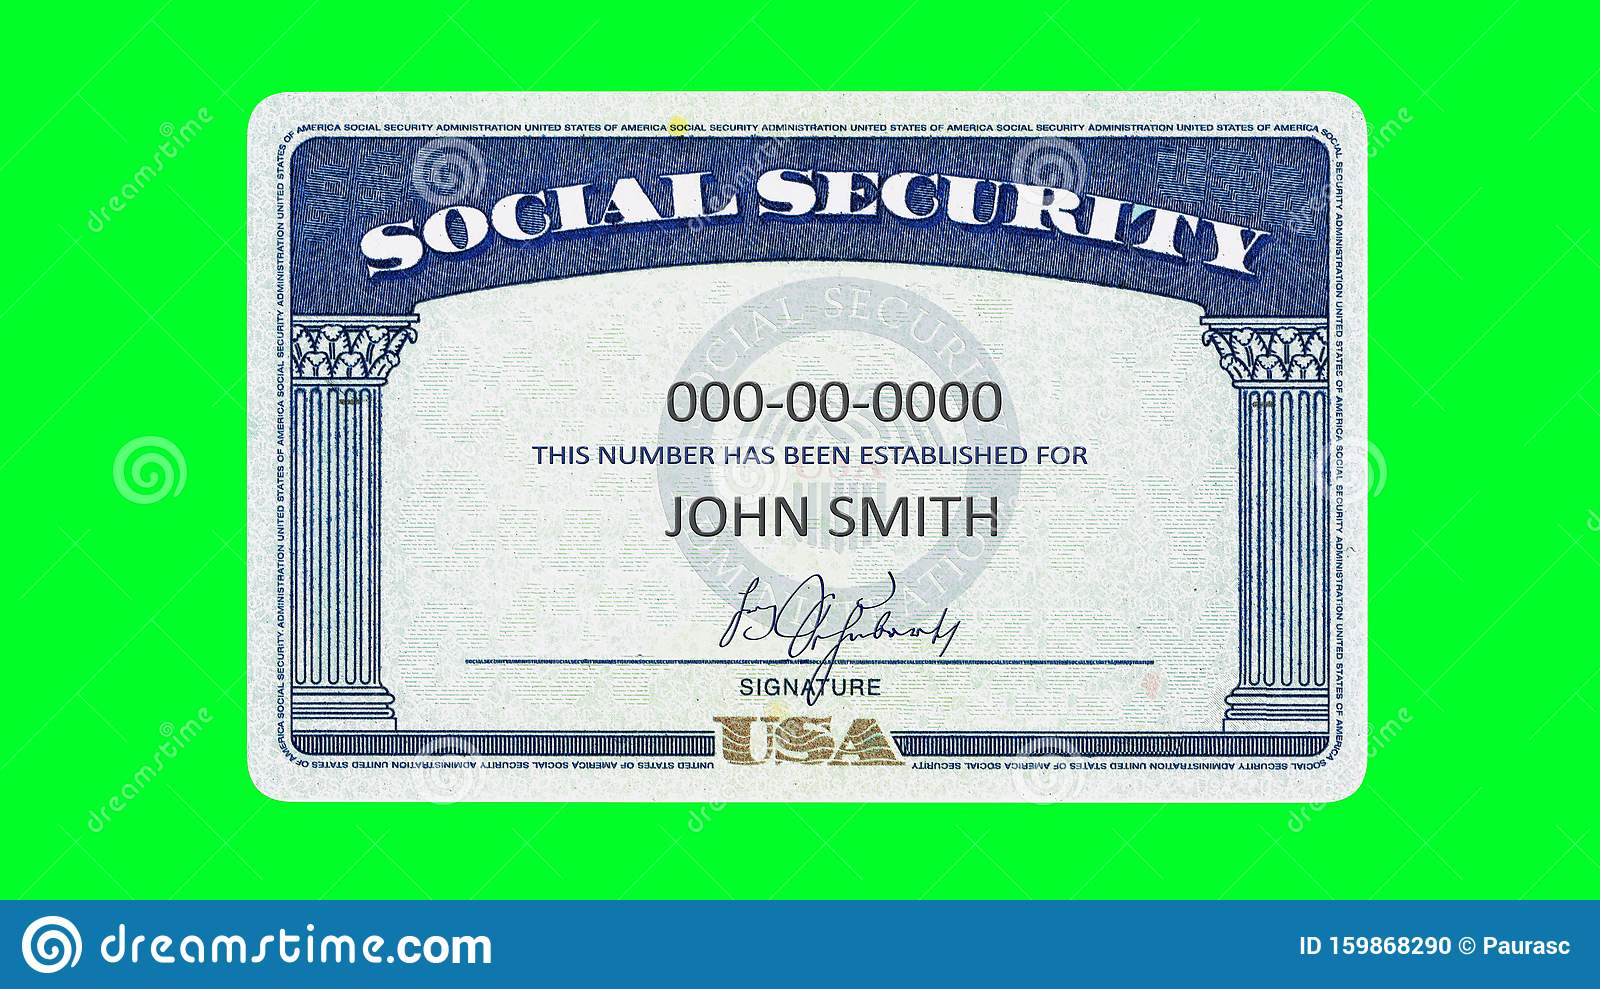 21,21 Social Security Card Photos - Free & Royalty-Free Stock Throughout Social Security Card Template Photoshop